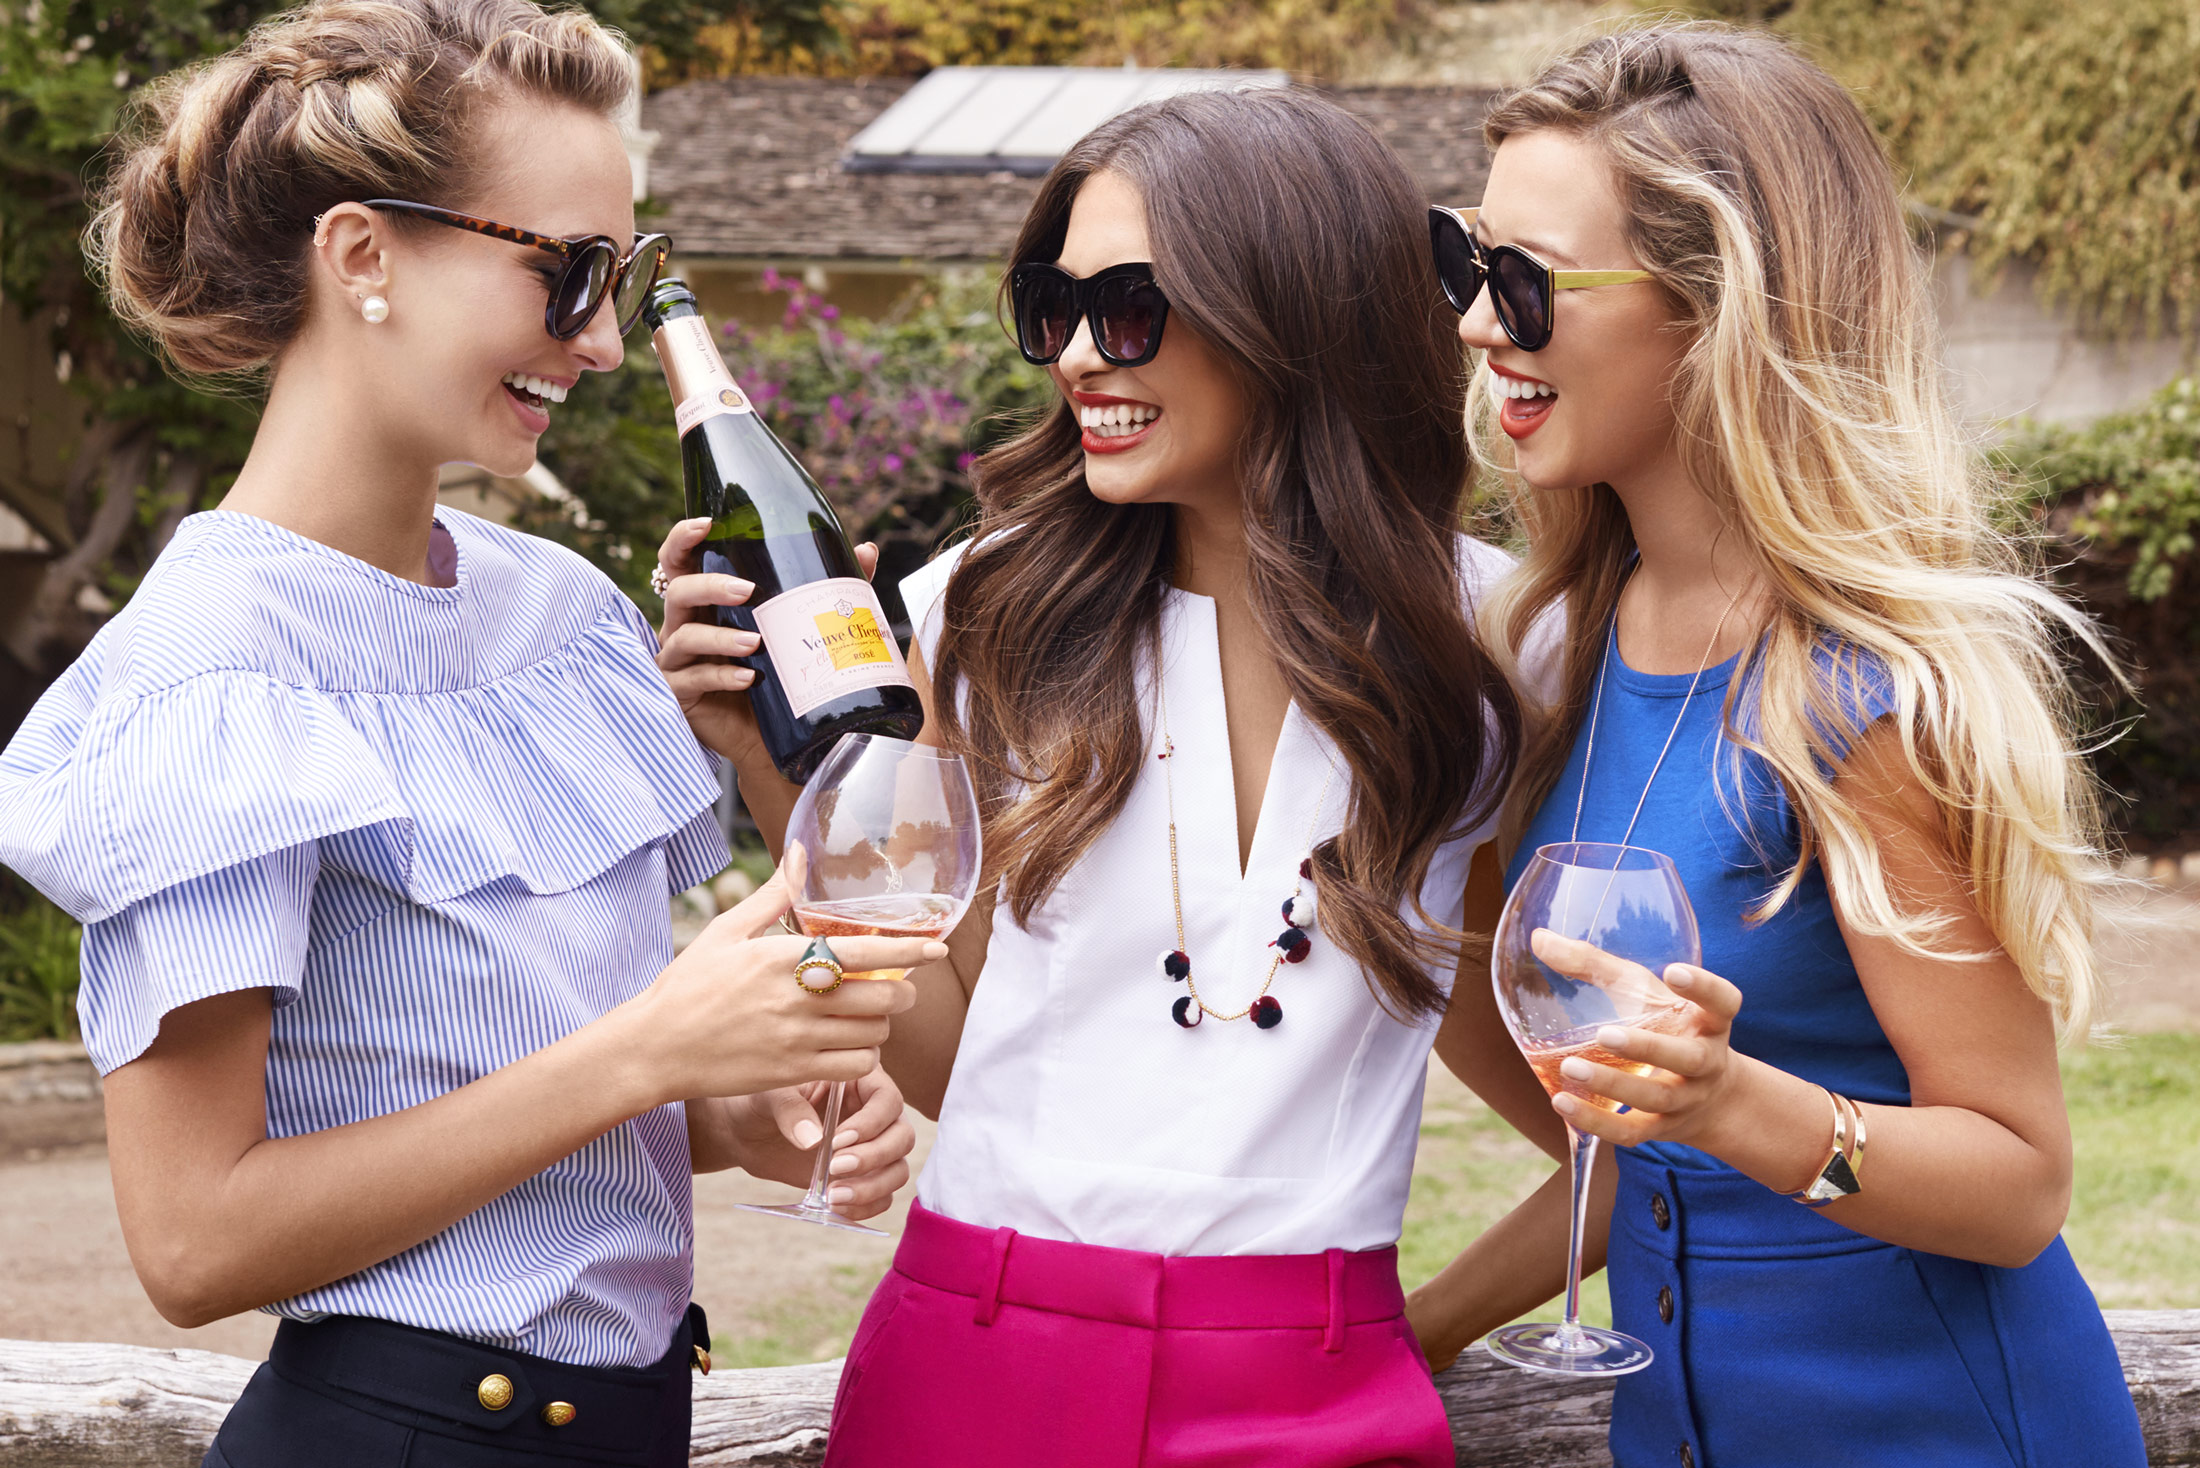 Girls laughing over champagne - Kim Genevieve Los Angeles Lifestyle Photographer